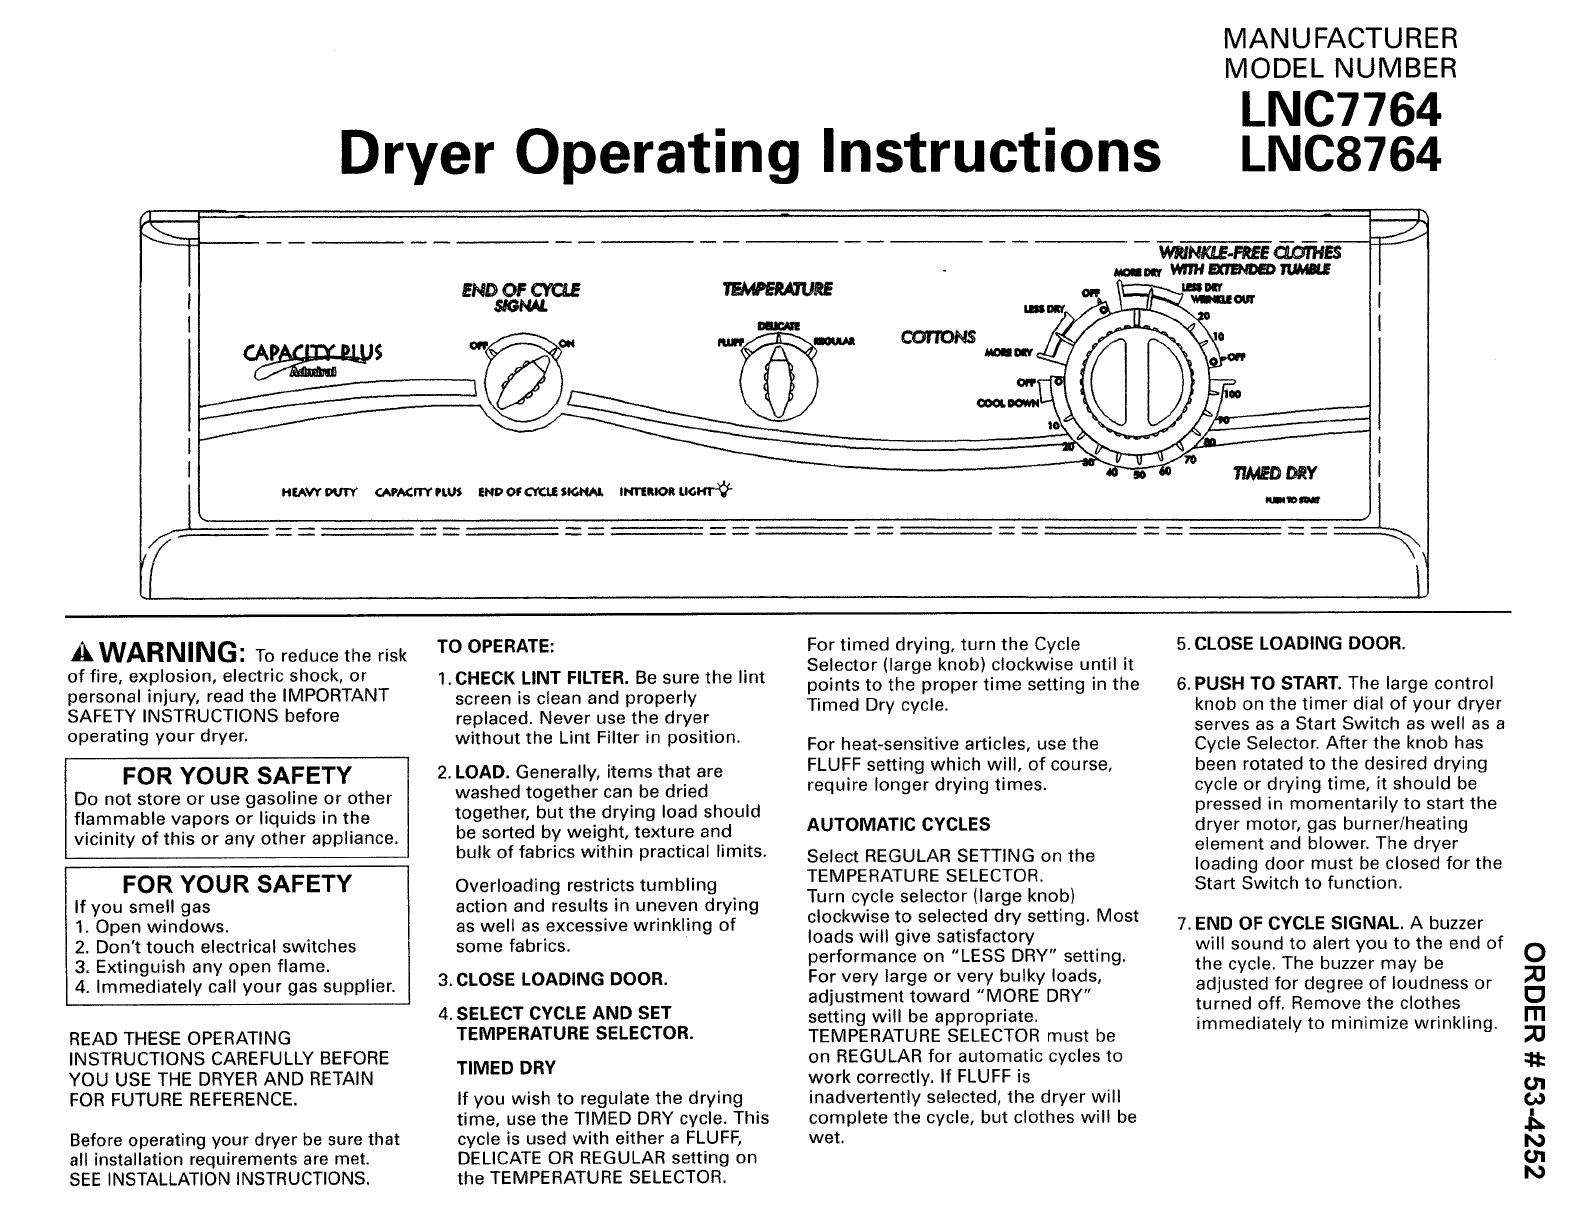 Admiral Dryer Schematic Trusted Wiring Diagrams Diagram Lnc7764a71 User Manual Manuals And Guides L0905177 Gas Schematics